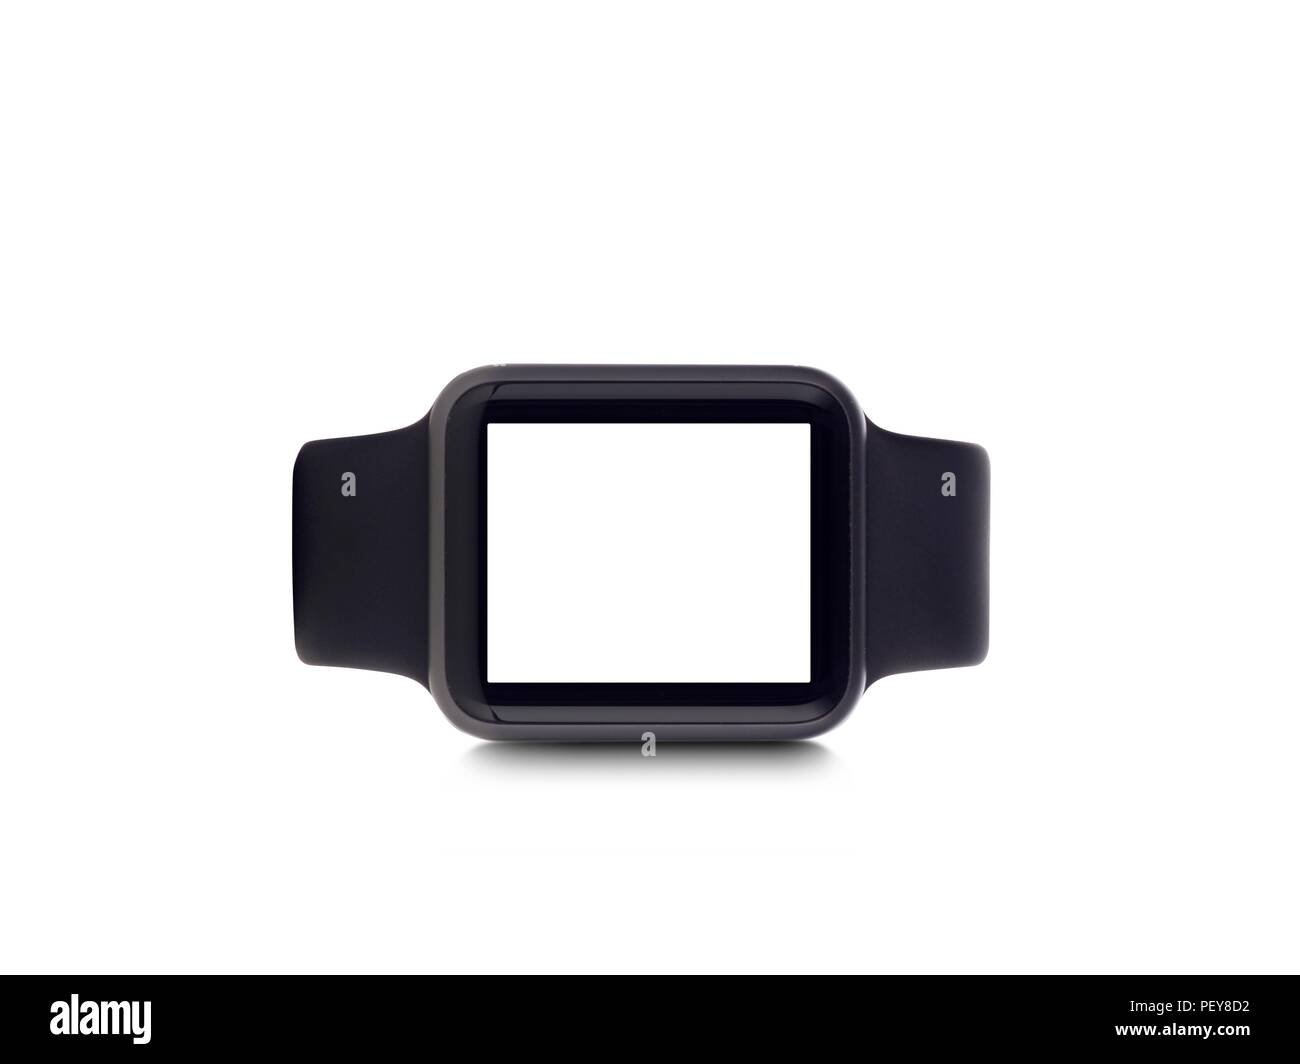 Smart watch, studio shot. - Stock Image